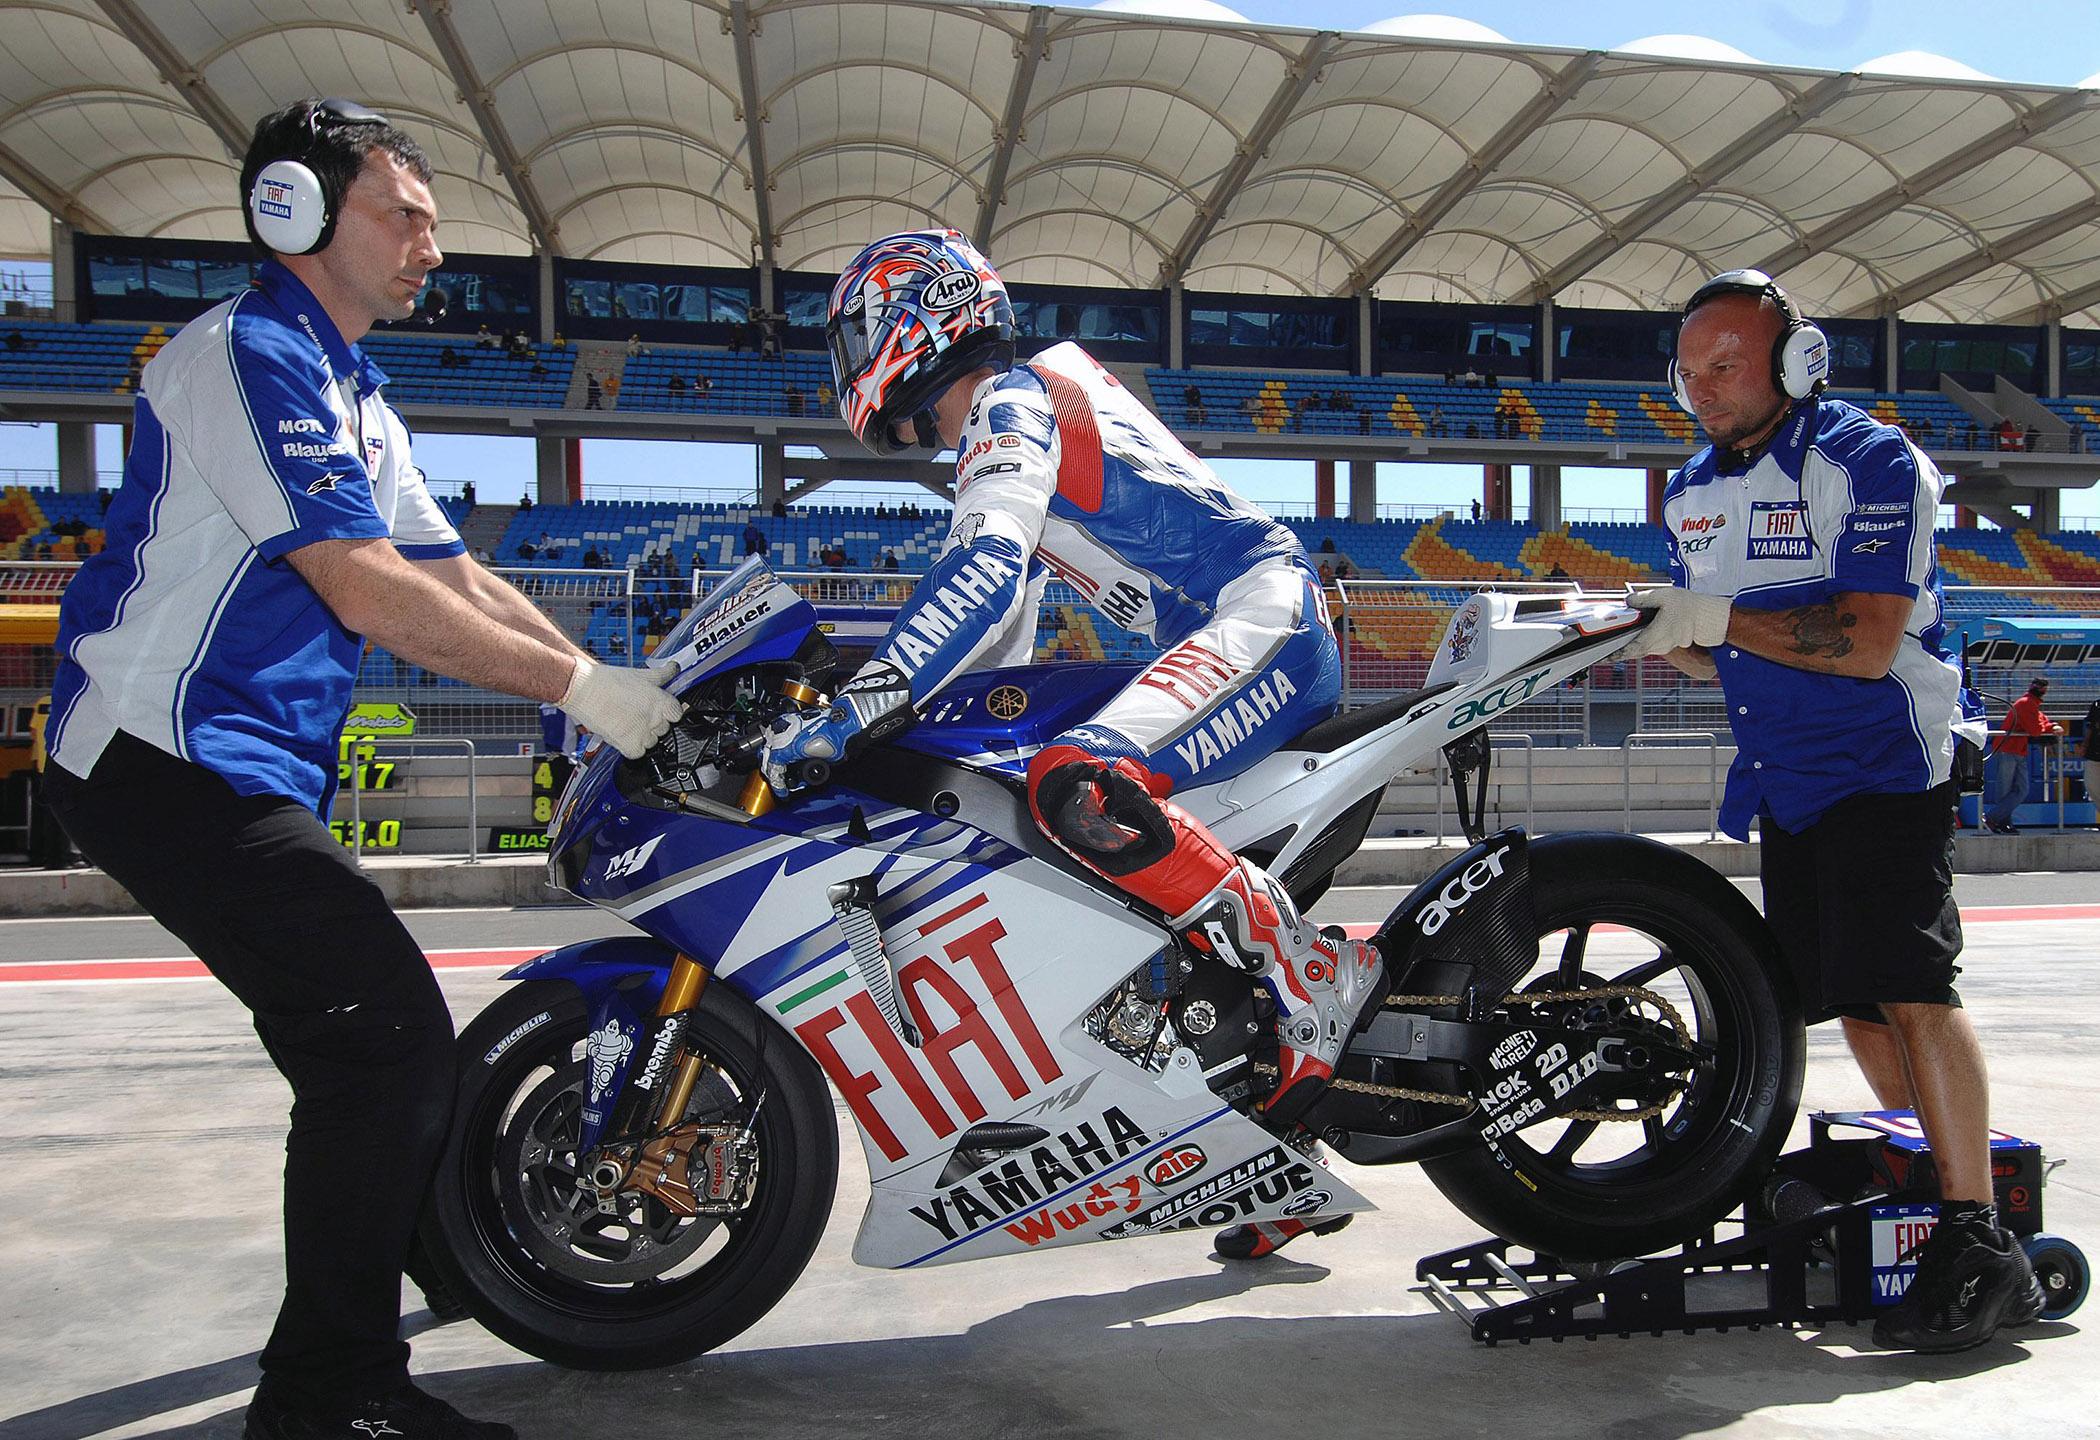 yamaha yzr-m1 picture # 45513 | yamaha photo gallery | carsbase